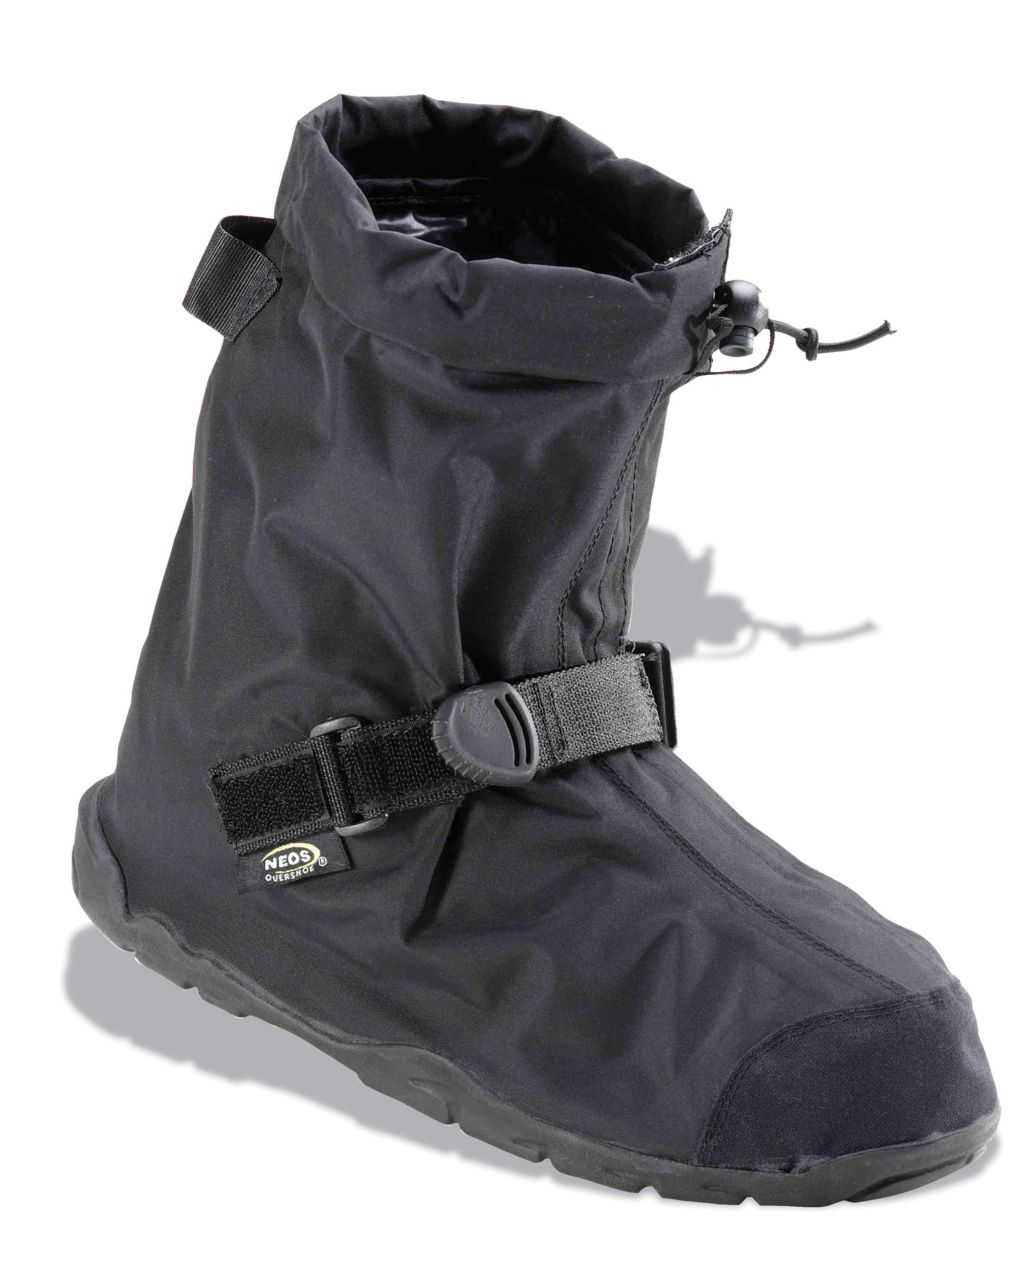 NEOS Villager™ Mid Overshoe_4